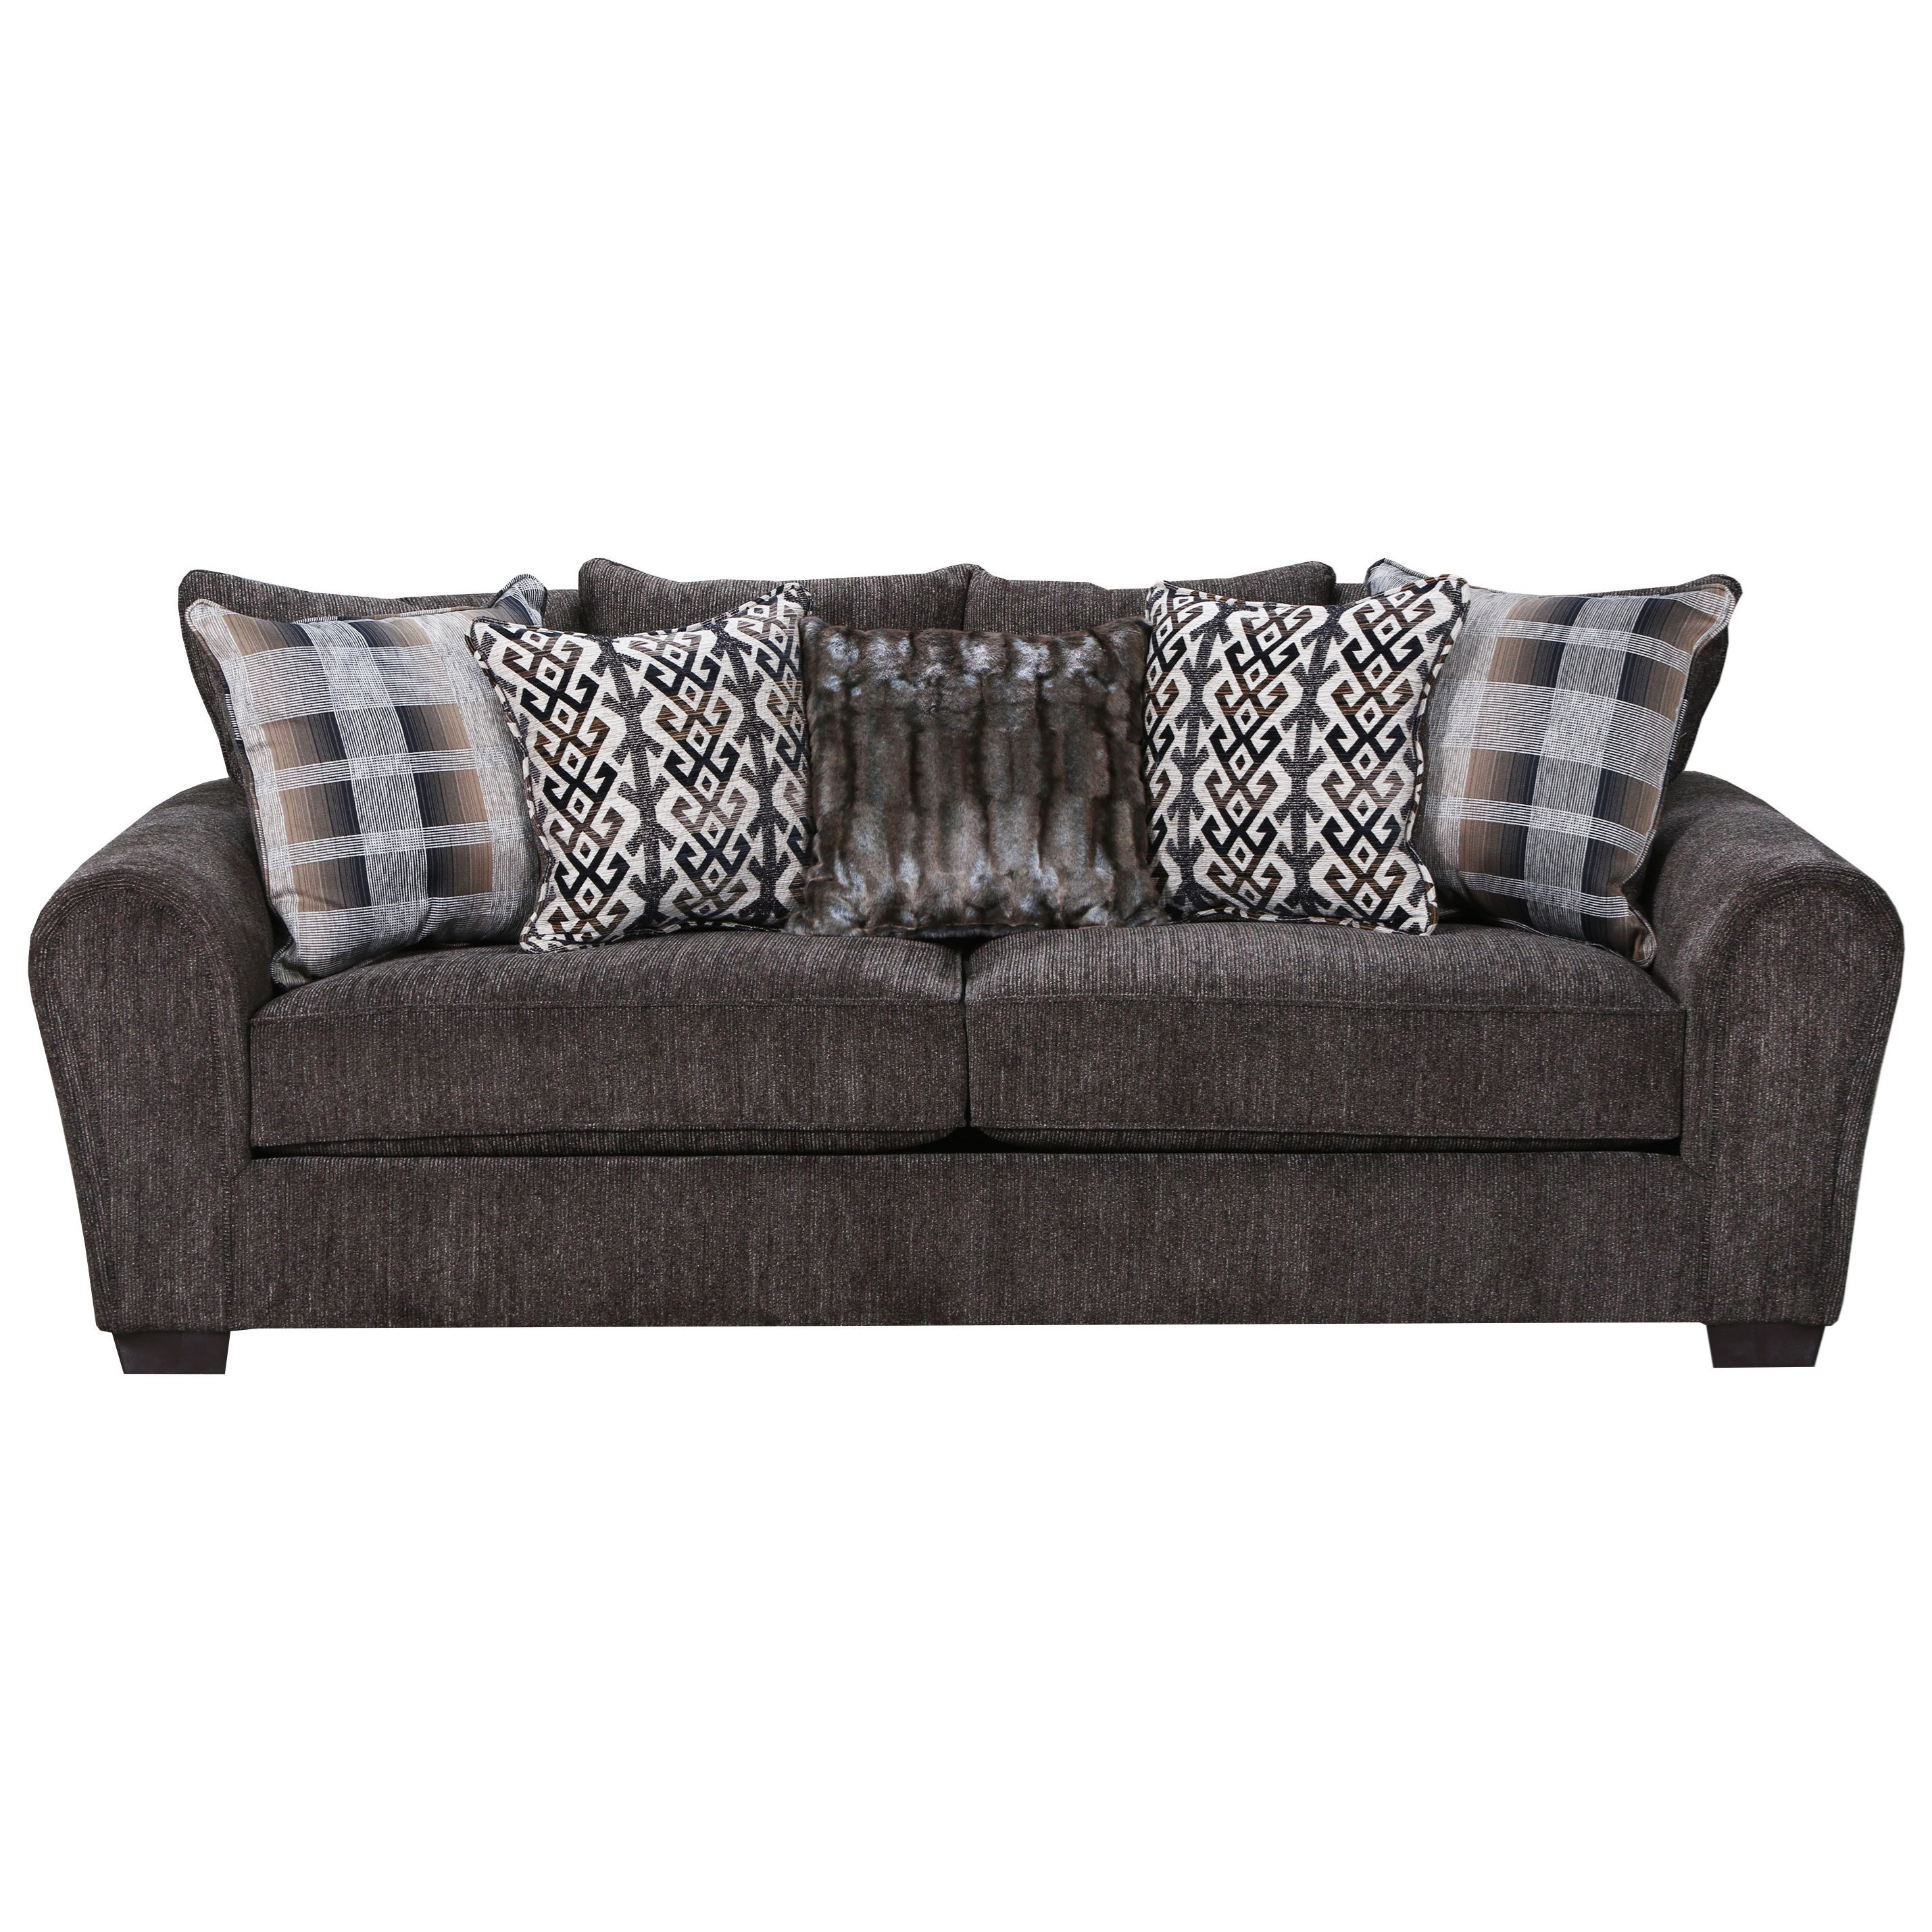 United Furniture Industries 9182BR Sofa - Item Number: 9282BRSofa-Parks Tiger